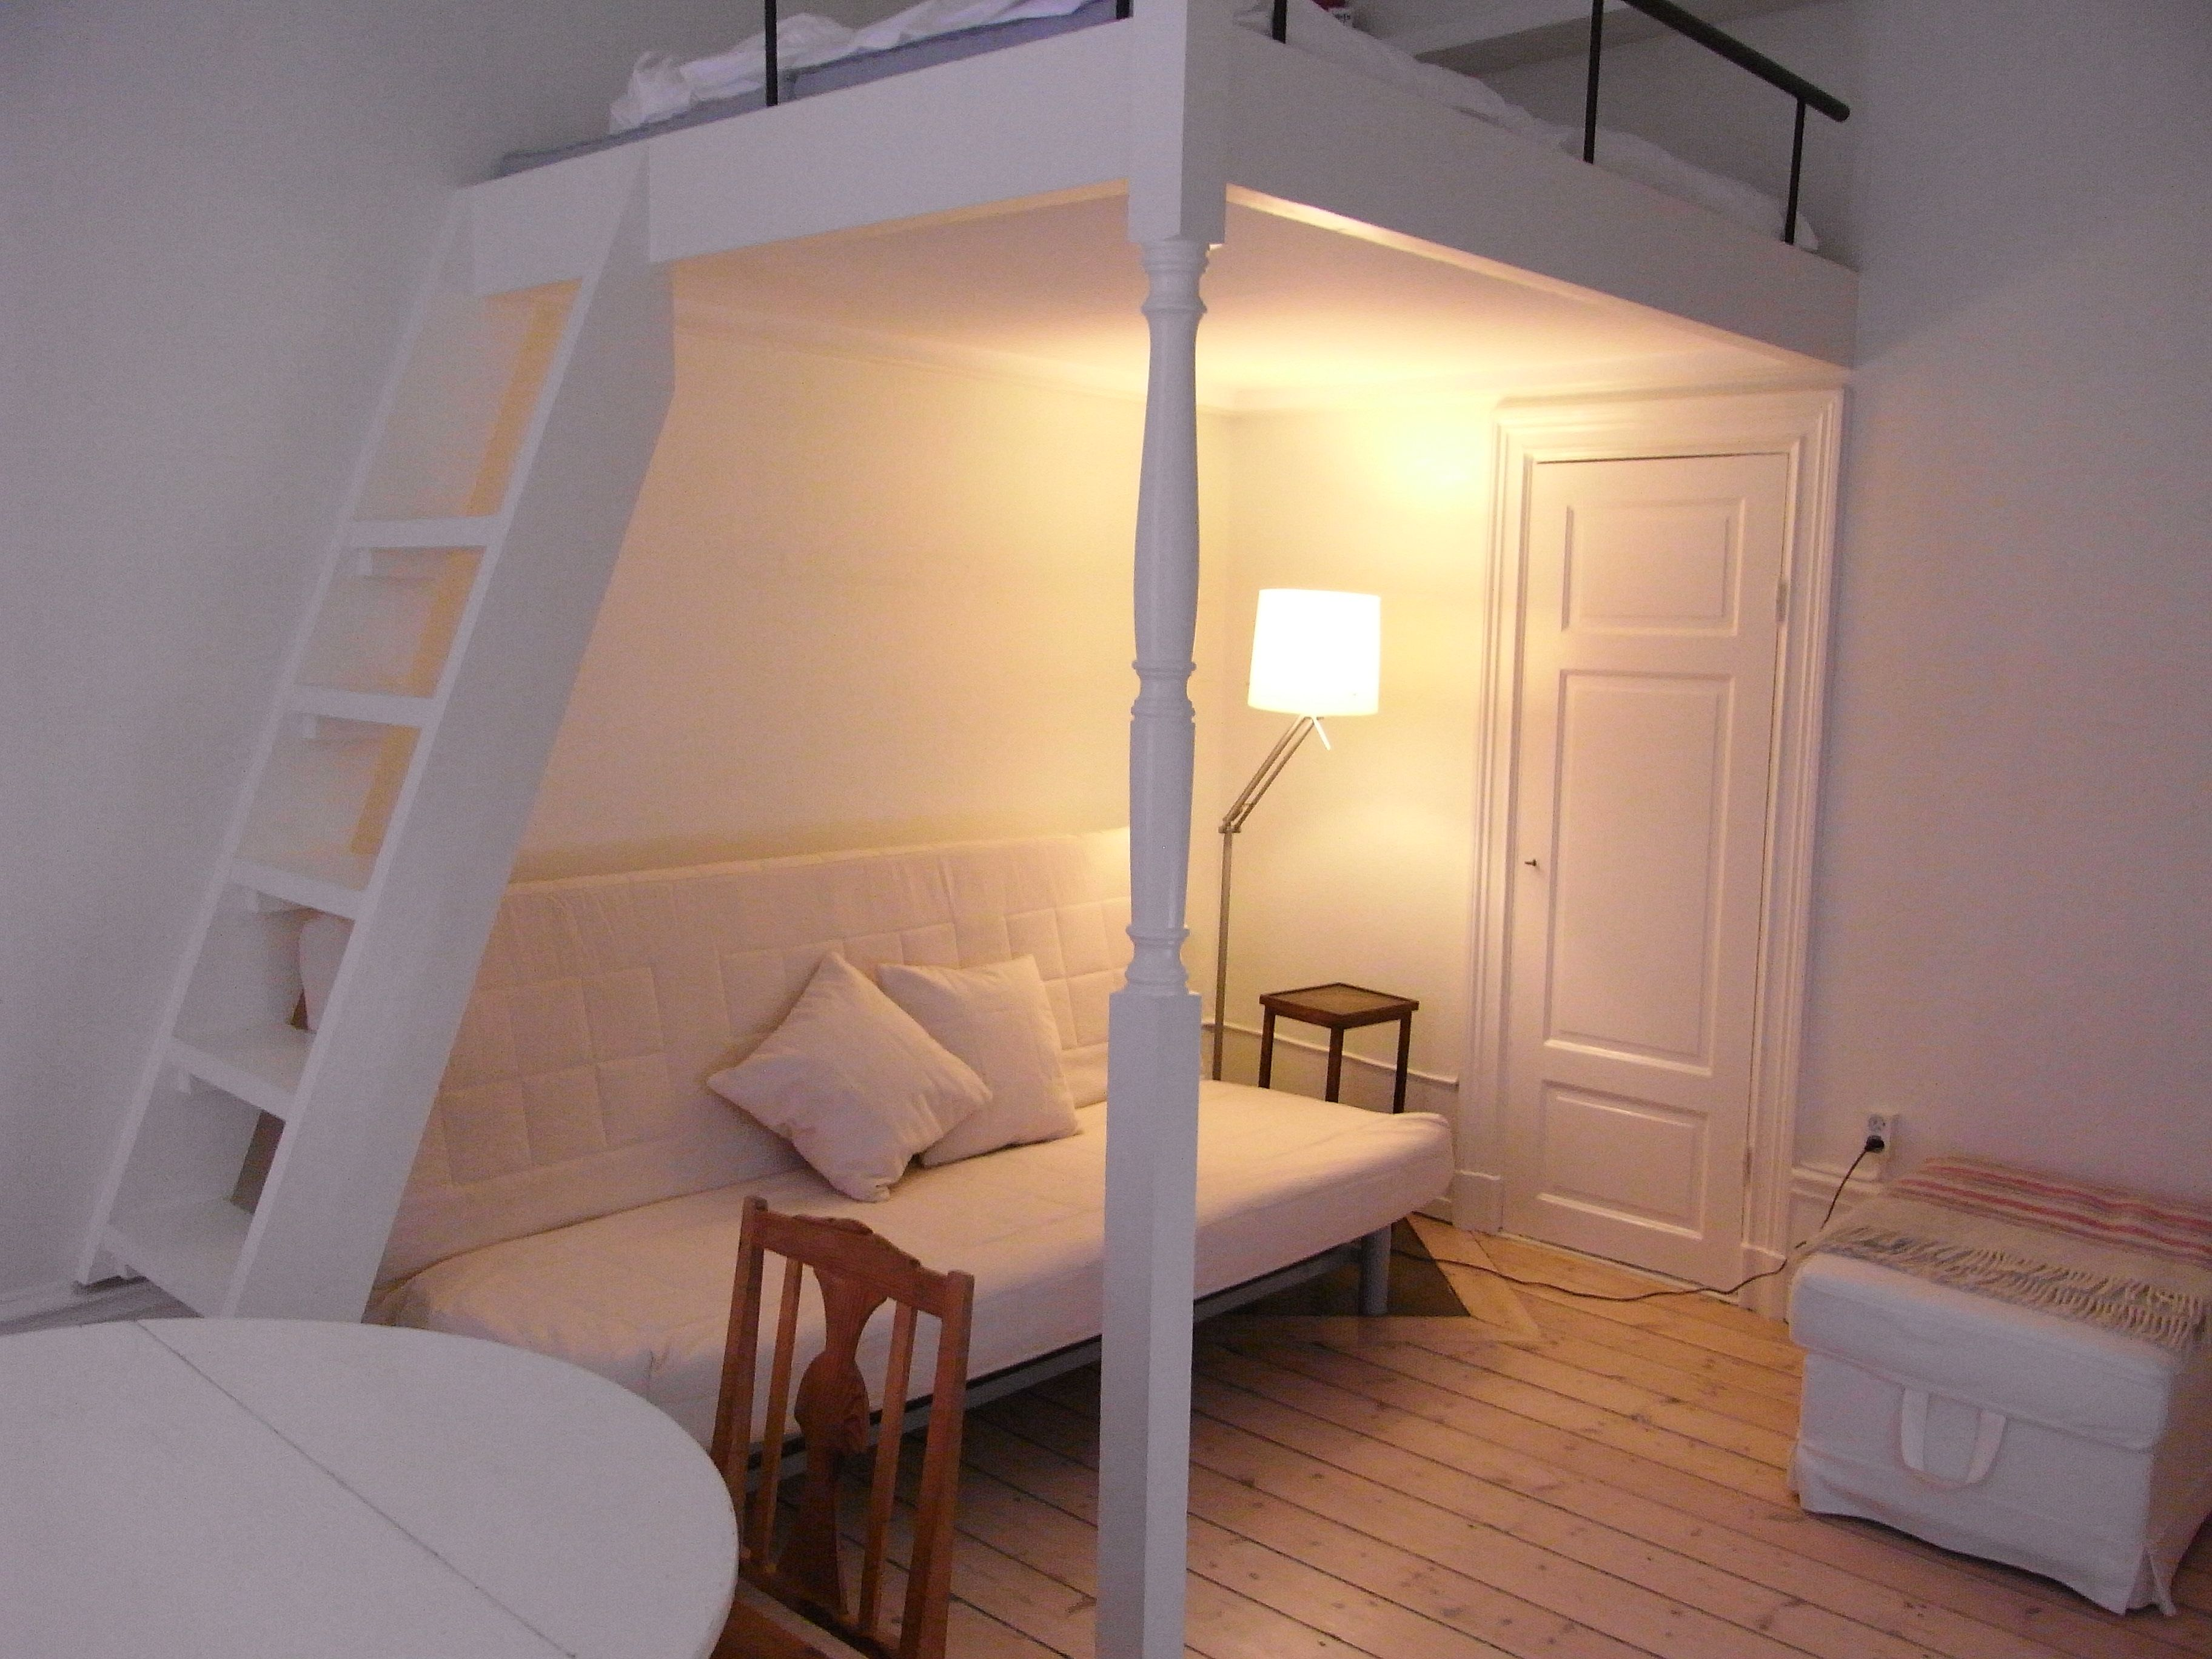 Small bedroom loft bed ideas  bed with sofa and latter built in  Making a home  Pinterest